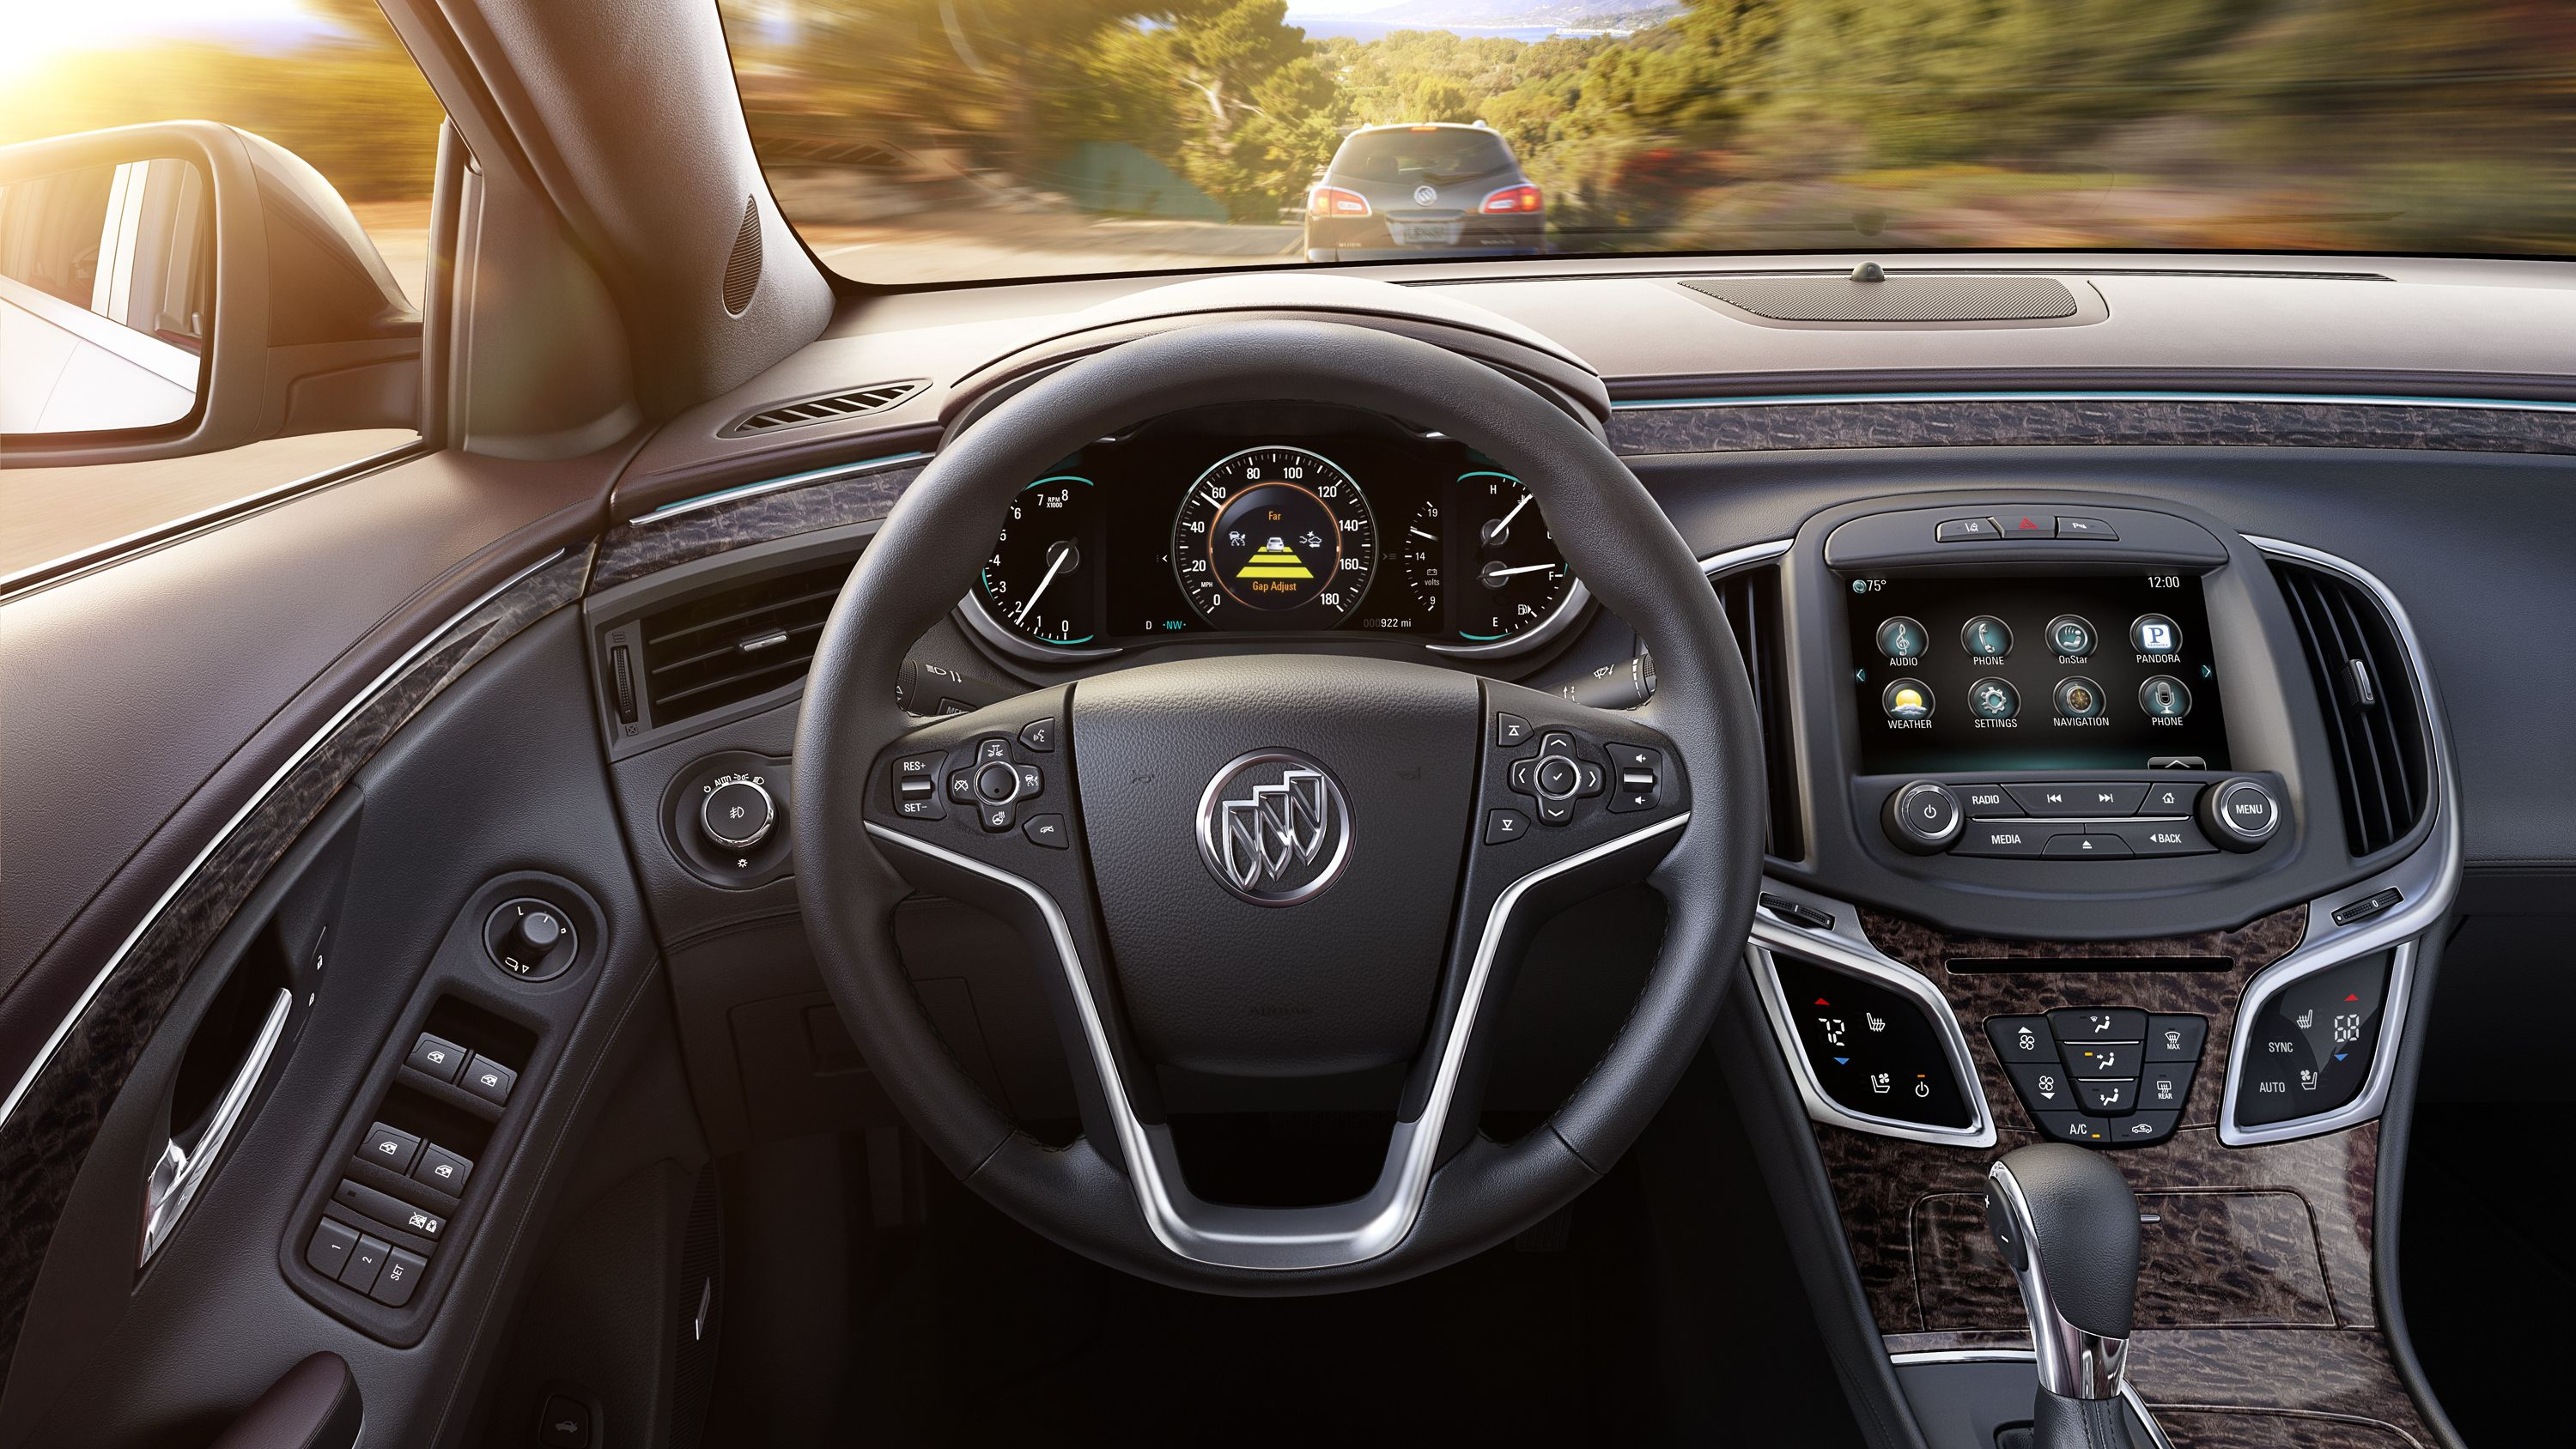 Buick LaCrosse: Instruments and Controls